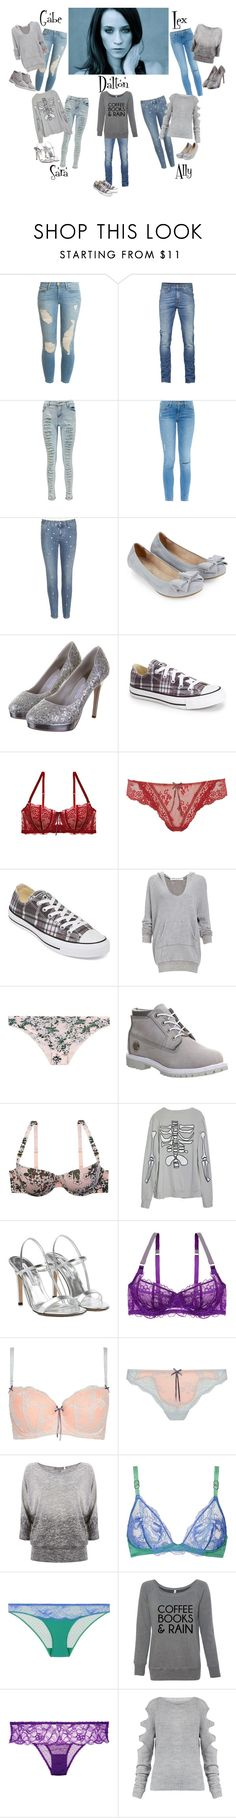 """""""Movie Night In..."""" by foreevers ❤ liked on Polyvore featuring Frame Denim, Boohoo, STELLA McCARTNEY, Accessorize, Rainbow Club, Converse, Heidi Klum Intimates, Project Social T, Timberland and High Heels Suicide"""